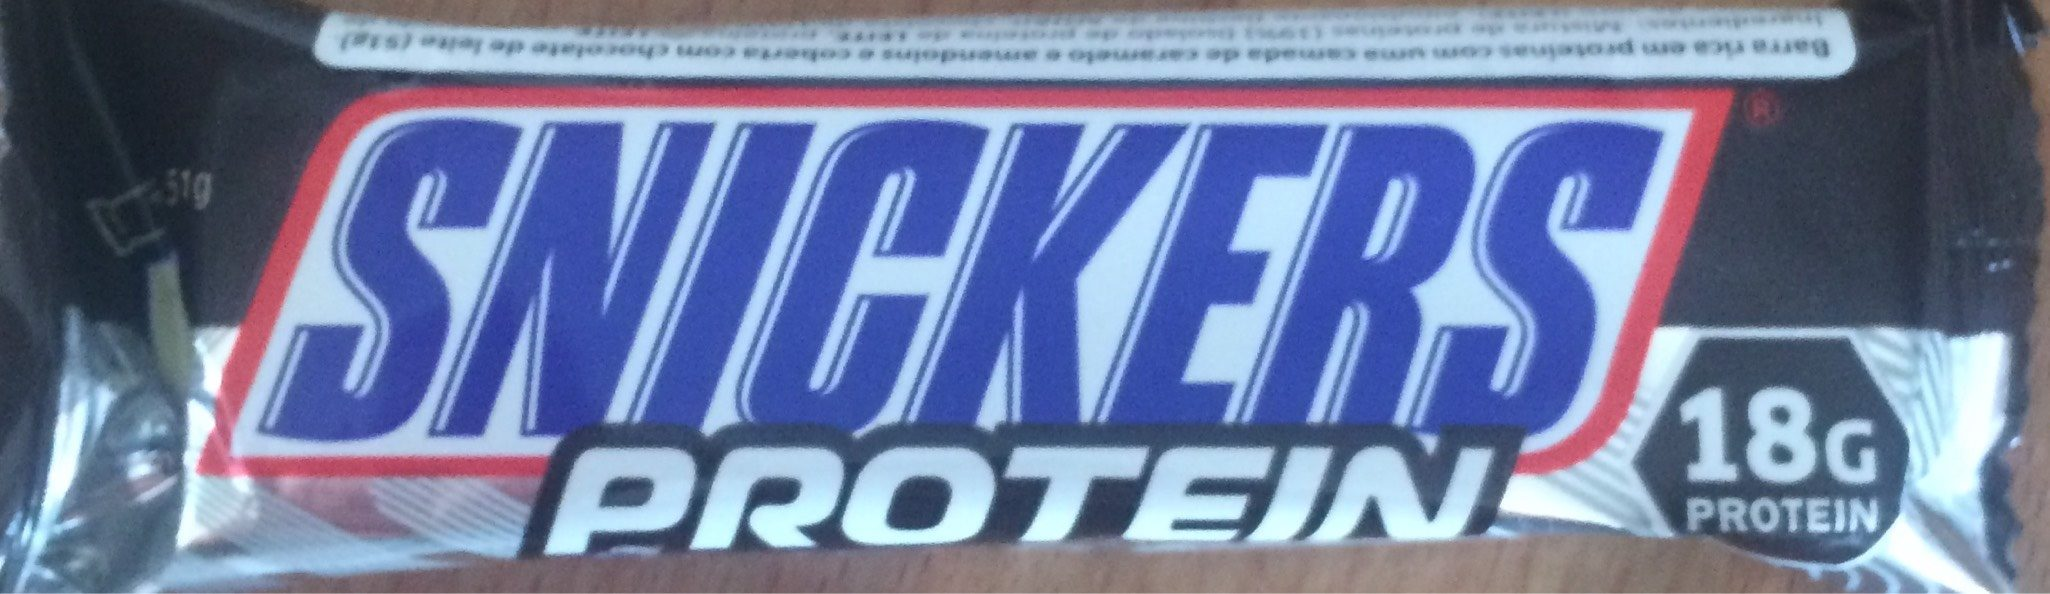 Snickers Protein - Produit - fr